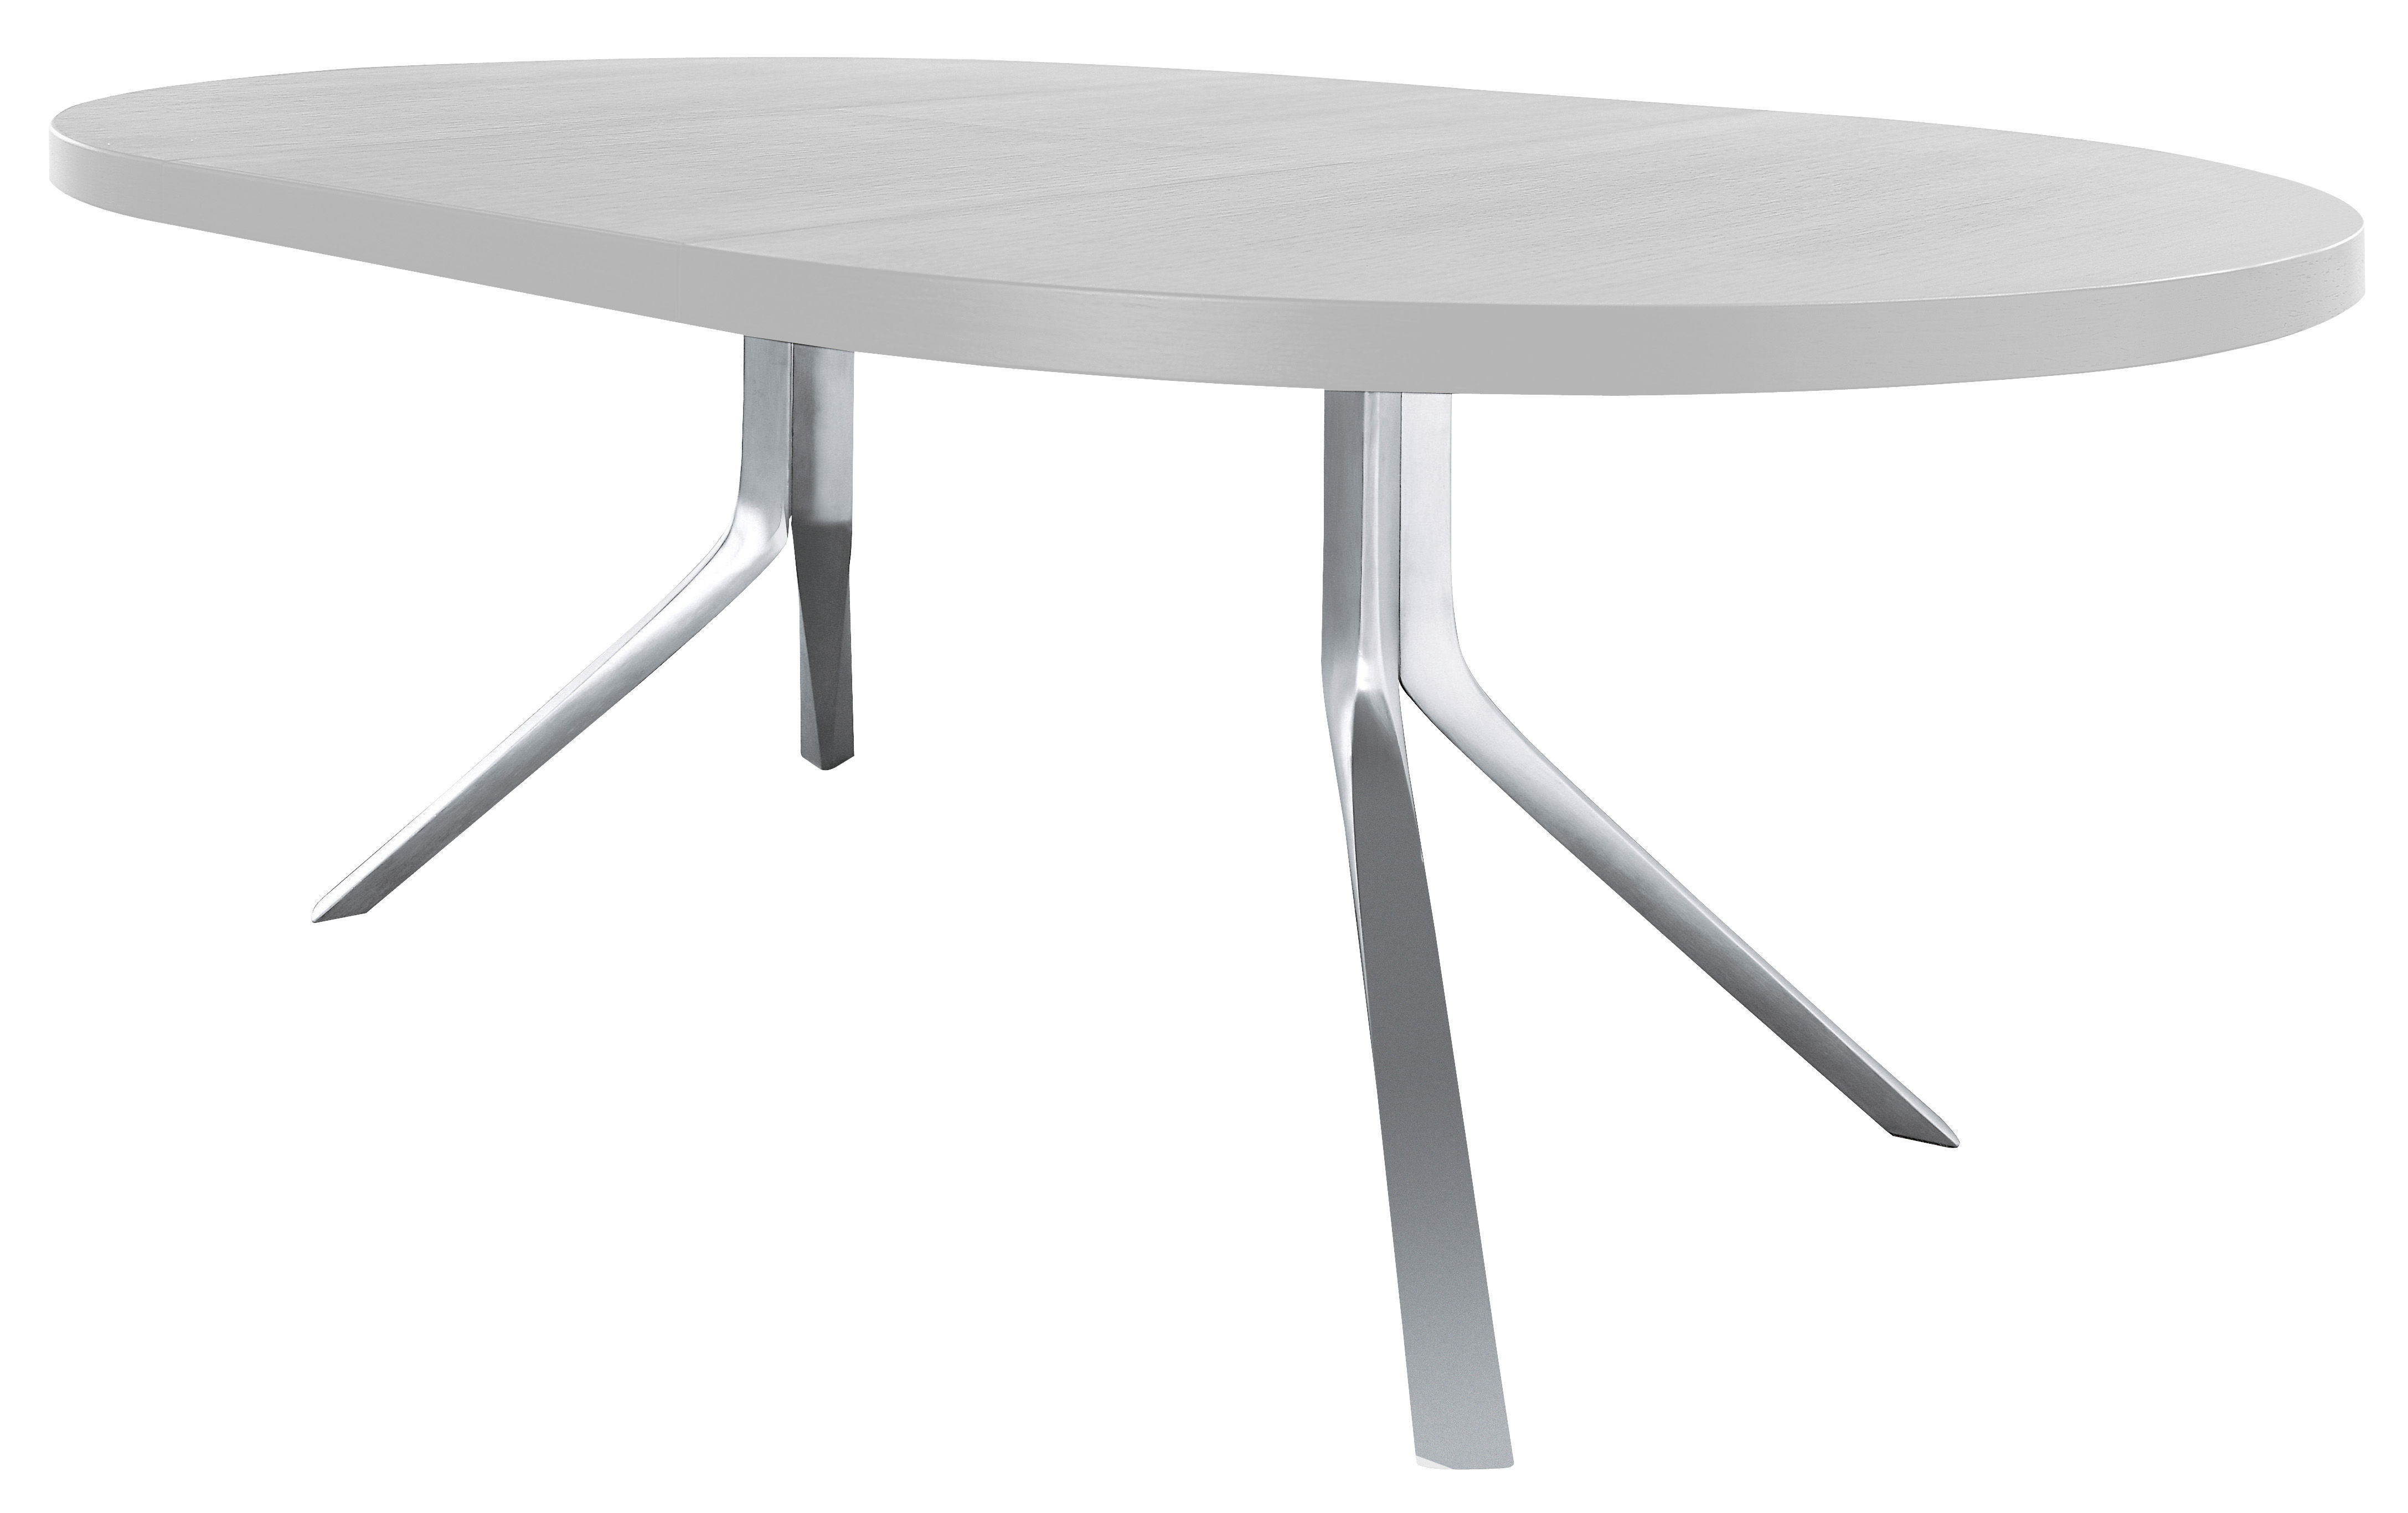 Table à Rallonge Design Table à Rallonge Oops L 125 à 180 Cm Blanc Pieds